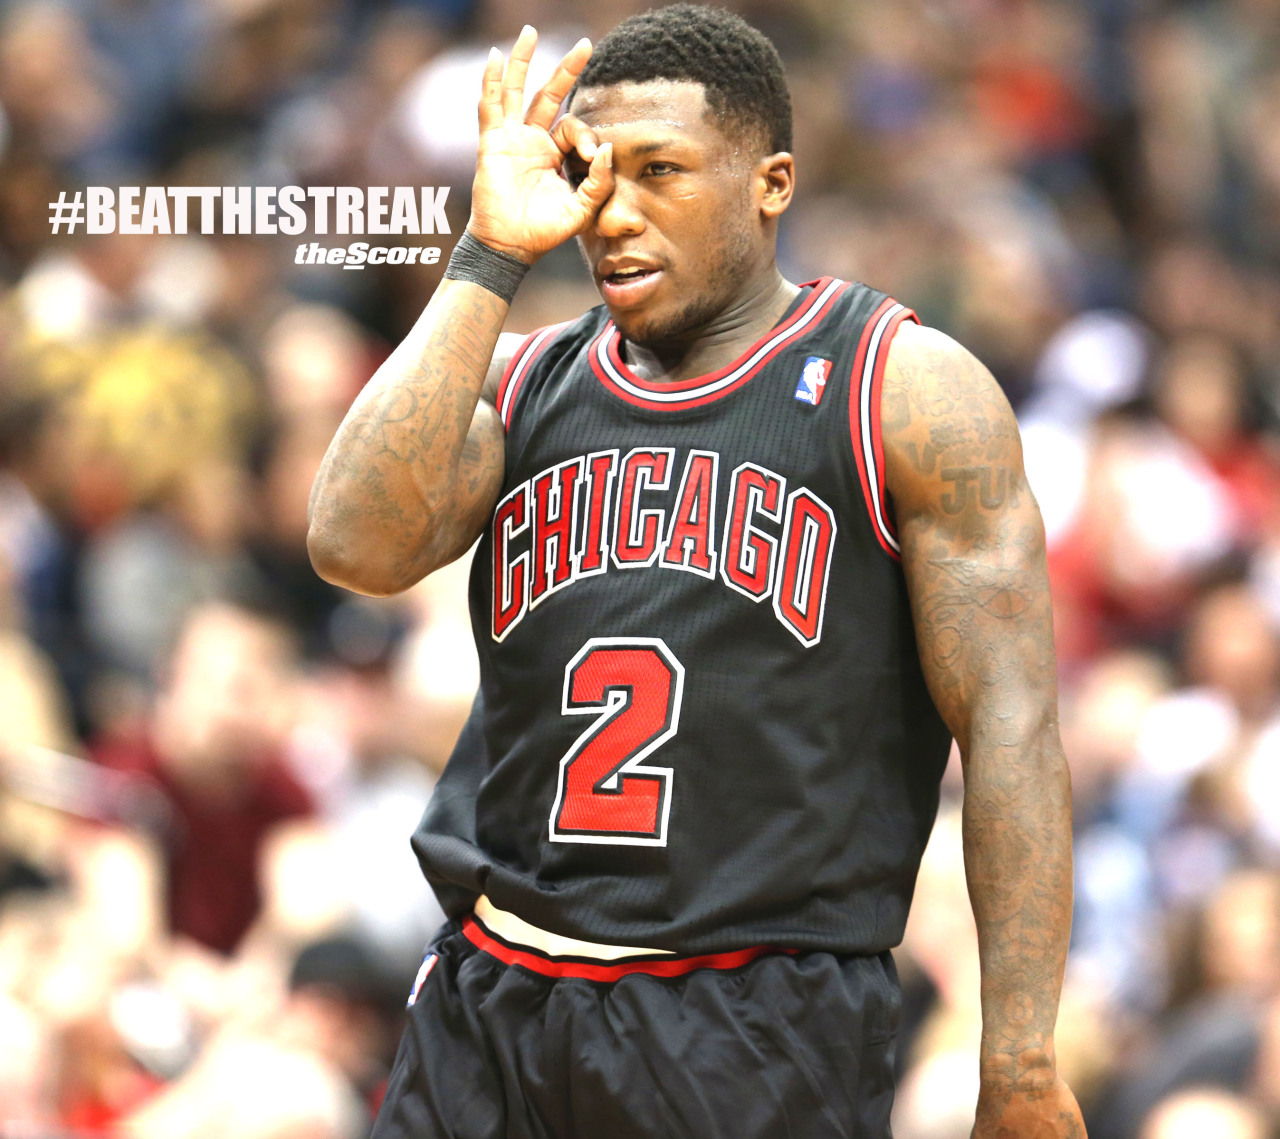 Photo: Nate Rob and the Bulls Beat The Streak.